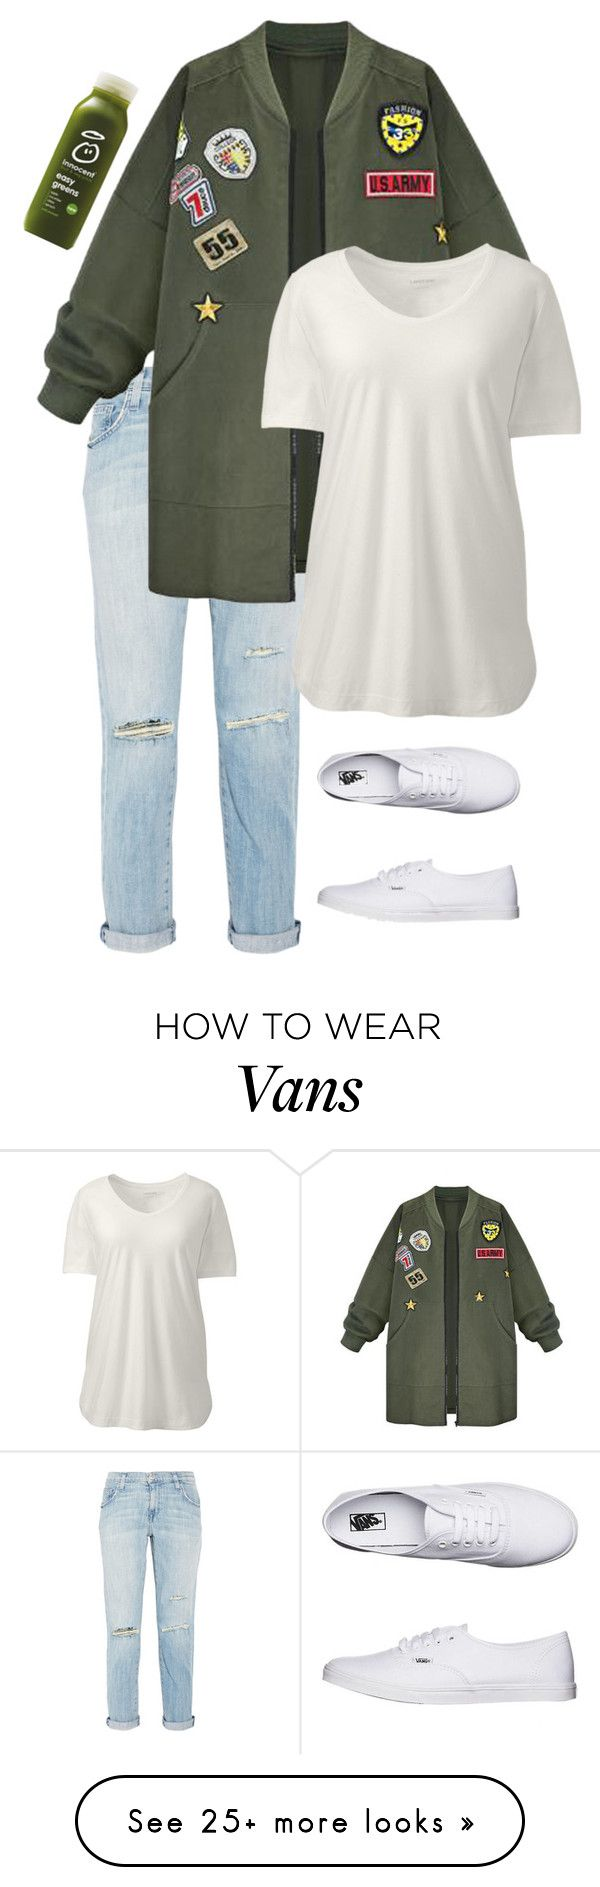 """"" by blah-blah-blah-black on Polyvore featuring Current/Elliott, WithChic, Lands' End, Vans and plus size clothing"